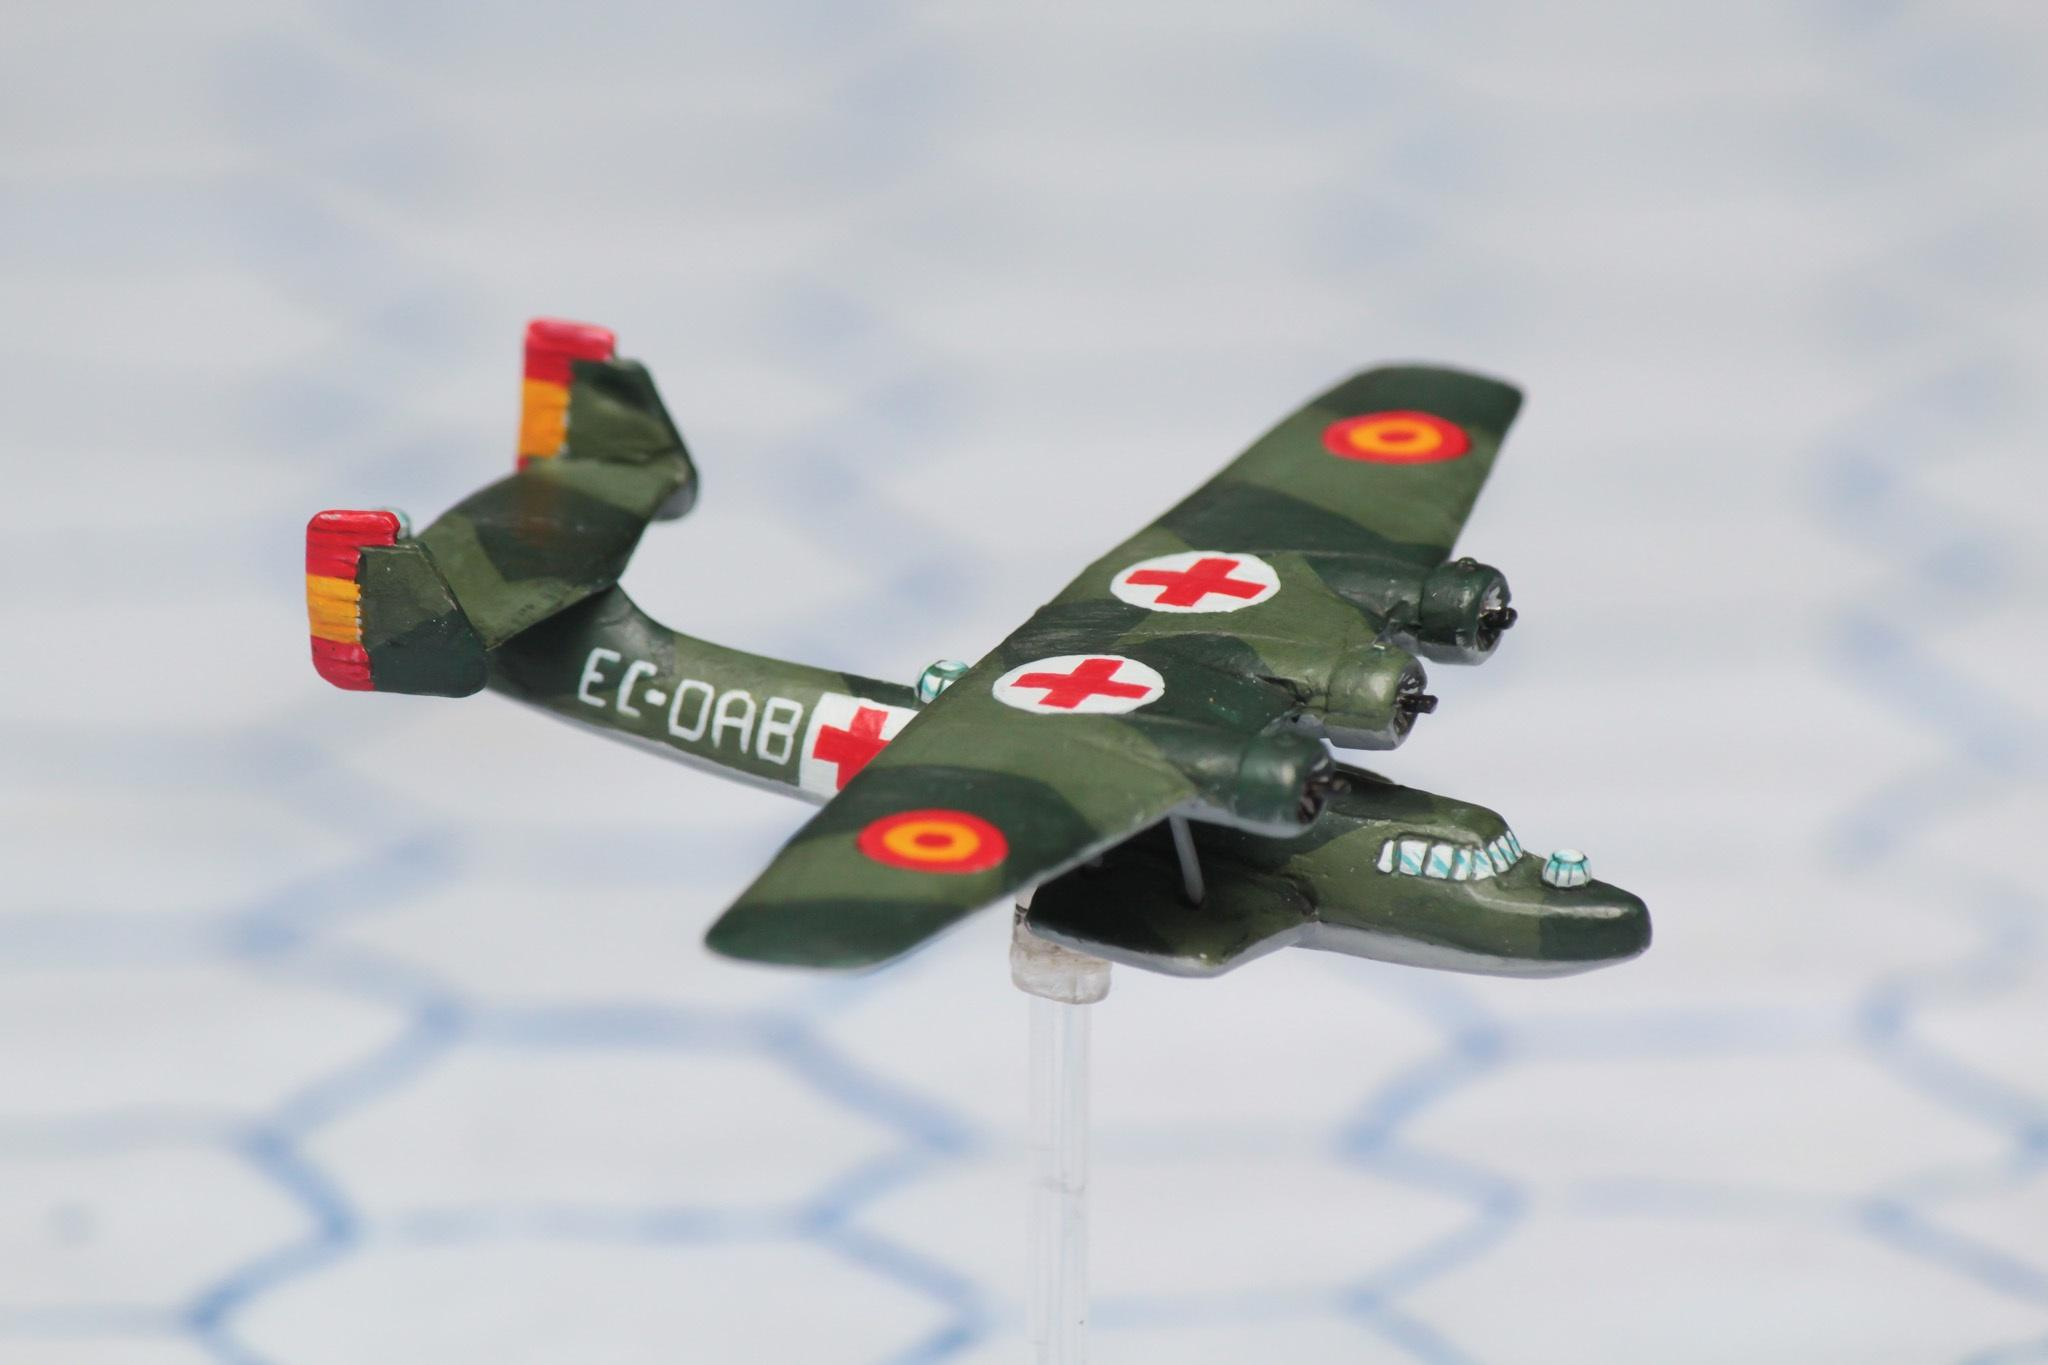 1:300 Scale, 6mm Scale, Air Combat, Airplane, Finland, French, Germans, Imperial Japan, Italian, Luftwaffe, Medic, Raf, Republic Of China, Soviet, Usaaf, World War 2